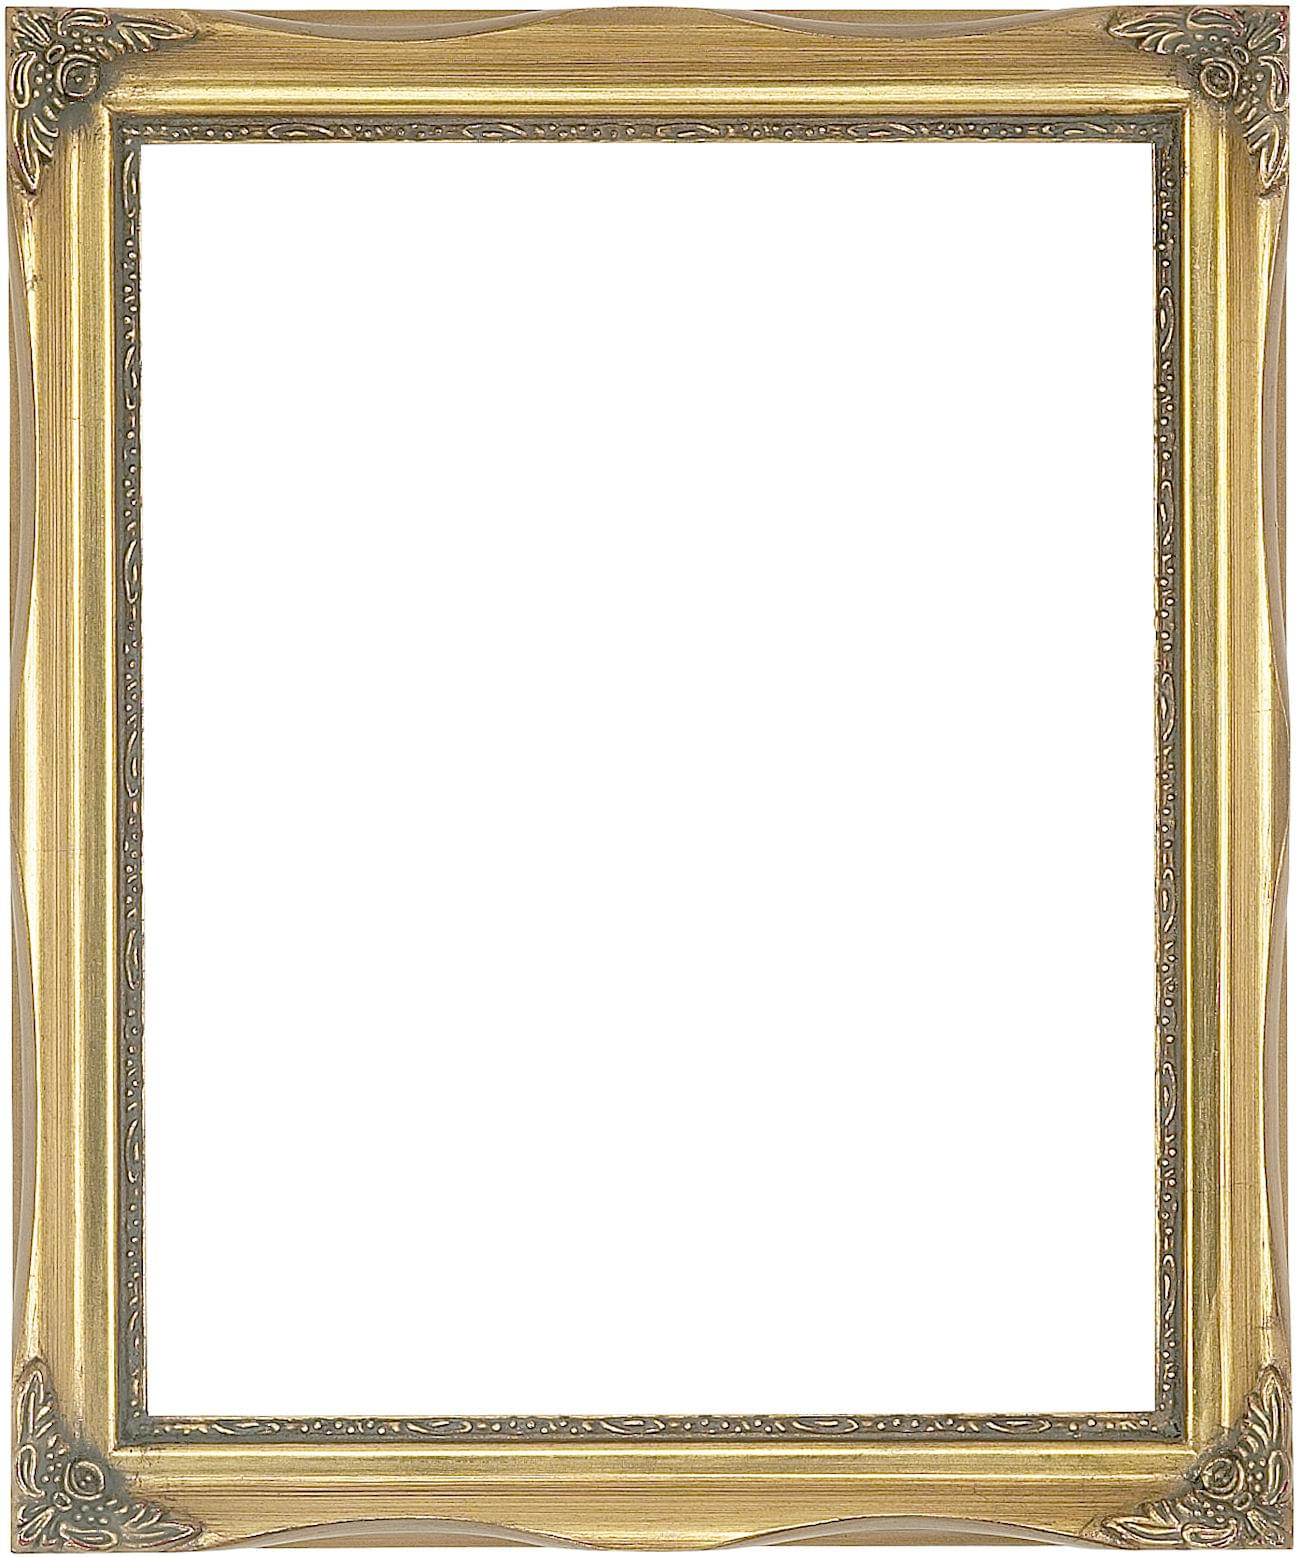 Frame Cut Out Png 23161